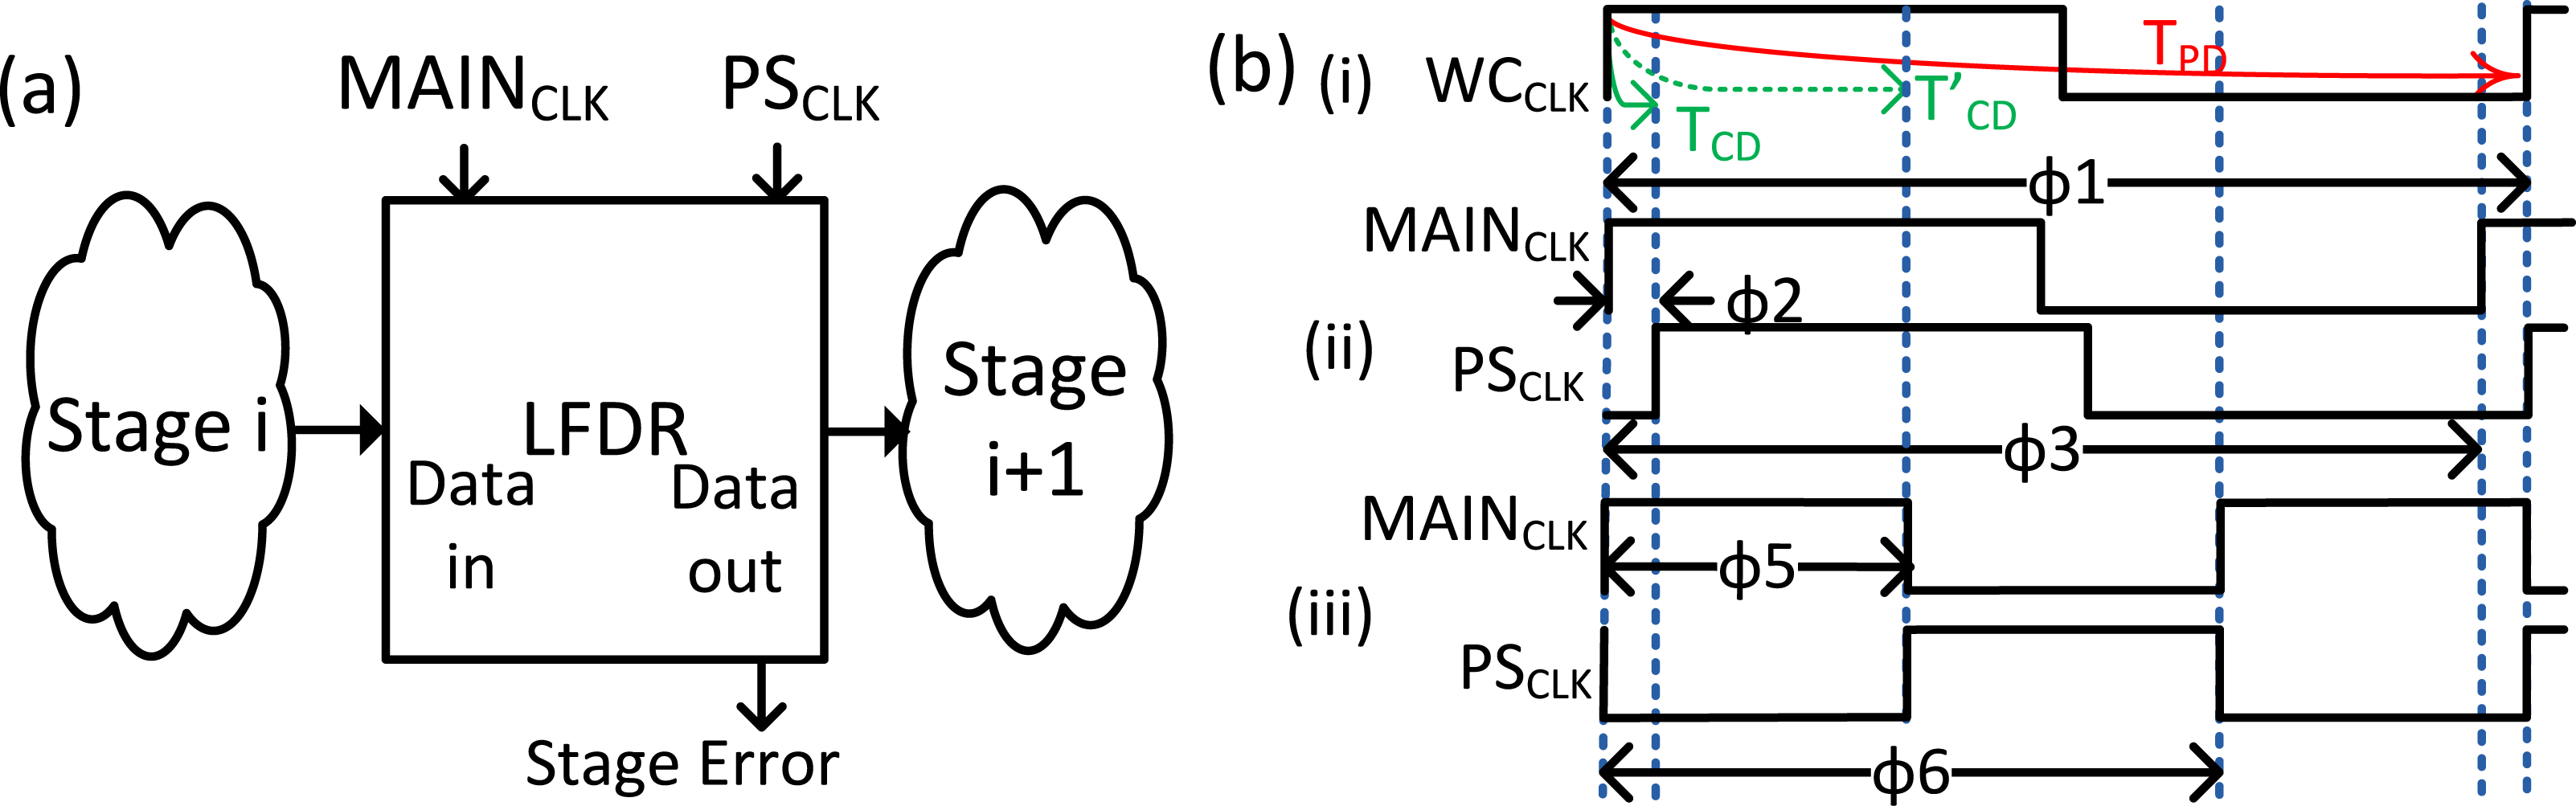 Managing Contamination Delay To Improve Timing Speculation And Simple Logic Circuit Eliminates Need For Lines In Figure 1 A Typical Pipeline Stage Reliably Overclocked Processor B Illustration Of Aggressive Main Ps Clocks Circuits With Different